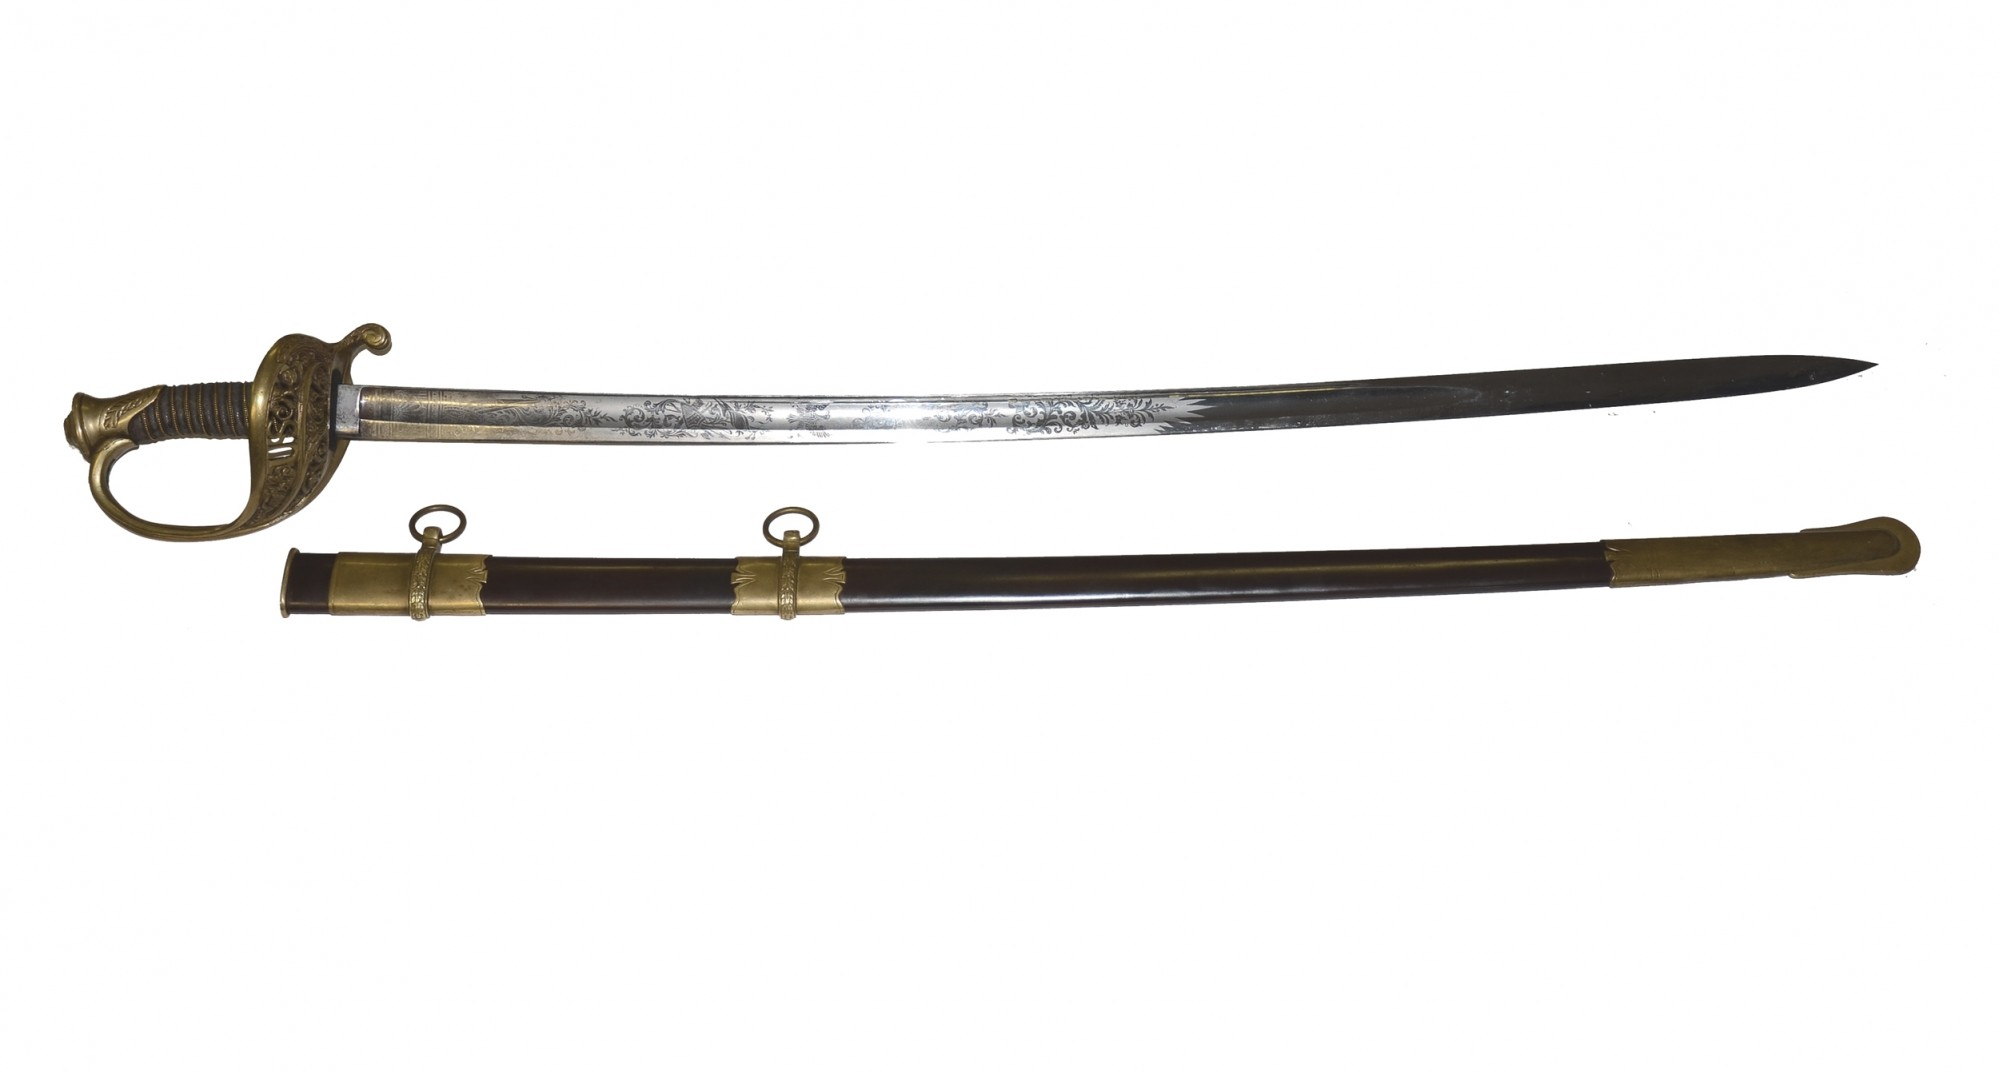 IMPORT MODEL 1850 STAFF AND FIELD OFFICER'S SWORD